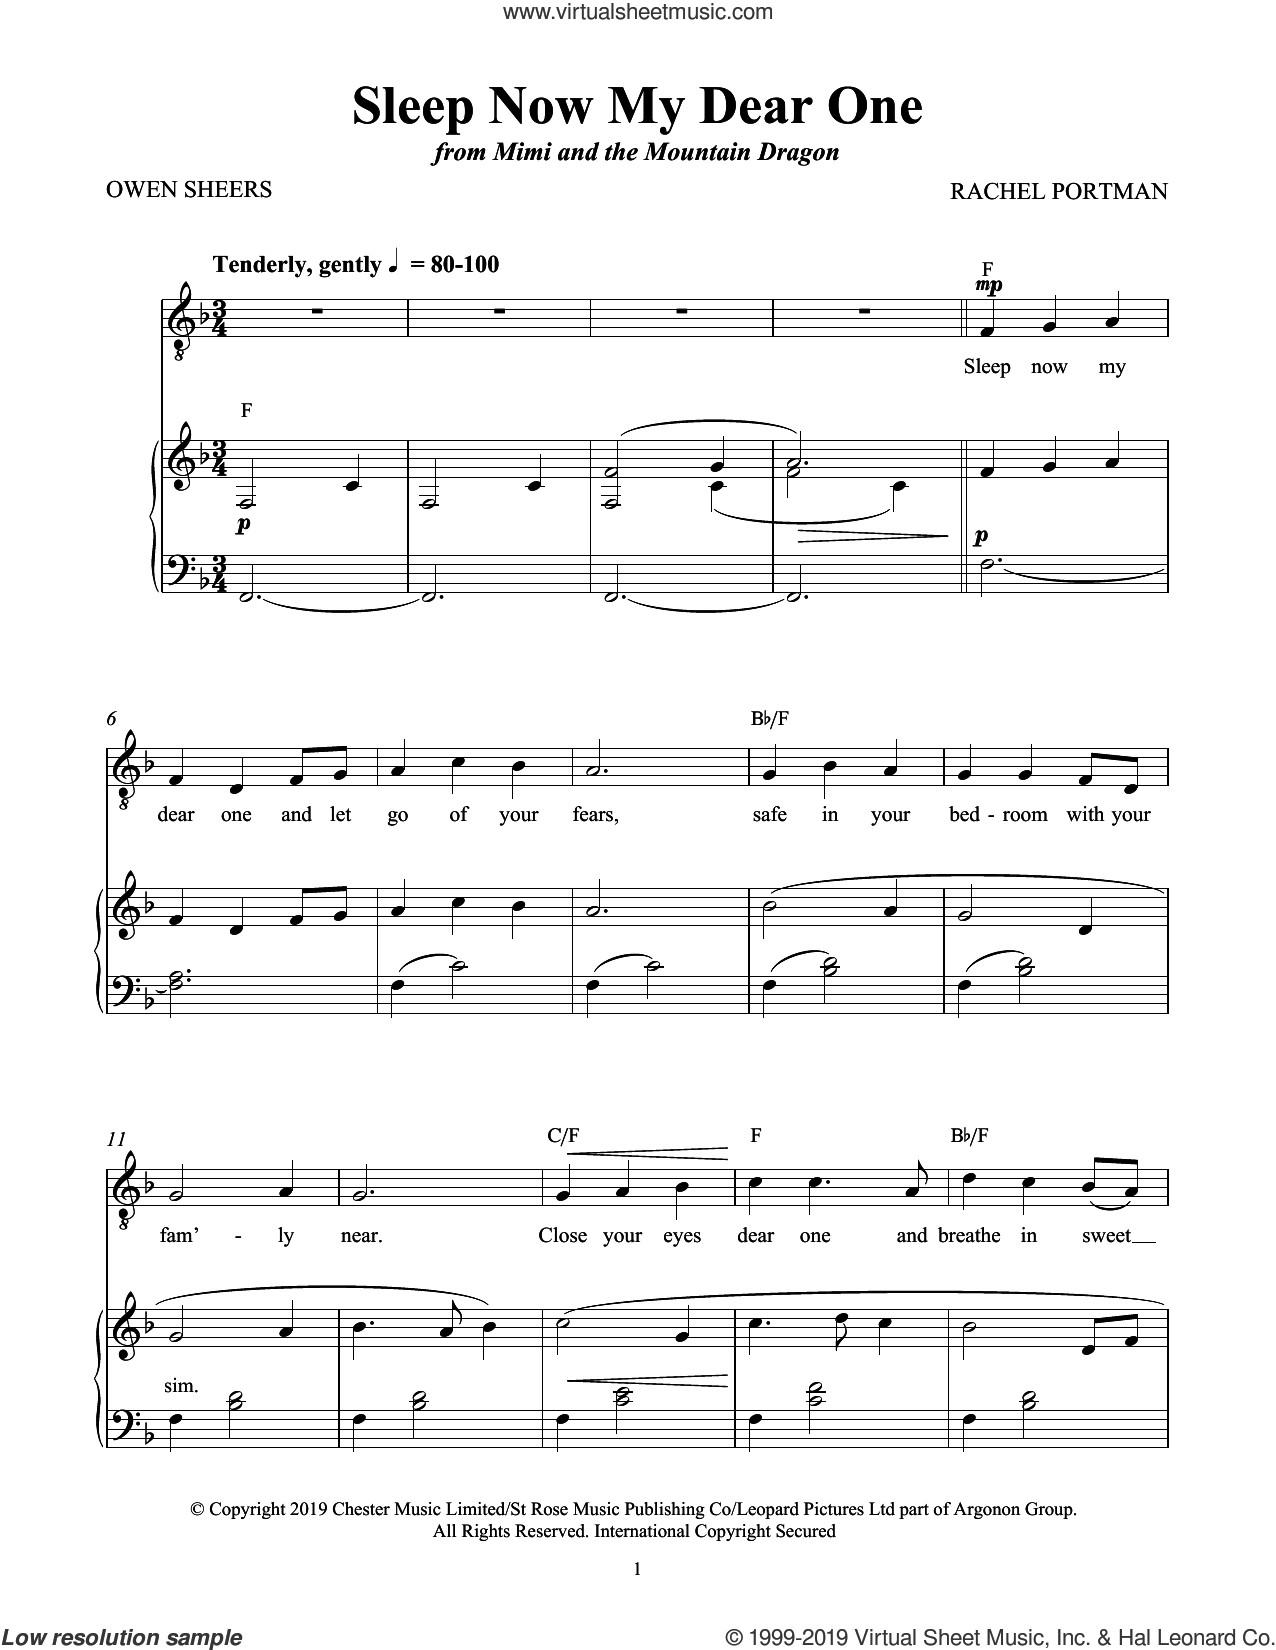 Sleep Now My Dear One (from Mimi and the Mountain Dragon) sheet music for voice and piano by Rachel Portman and Owen Sheers, intermediate skill level